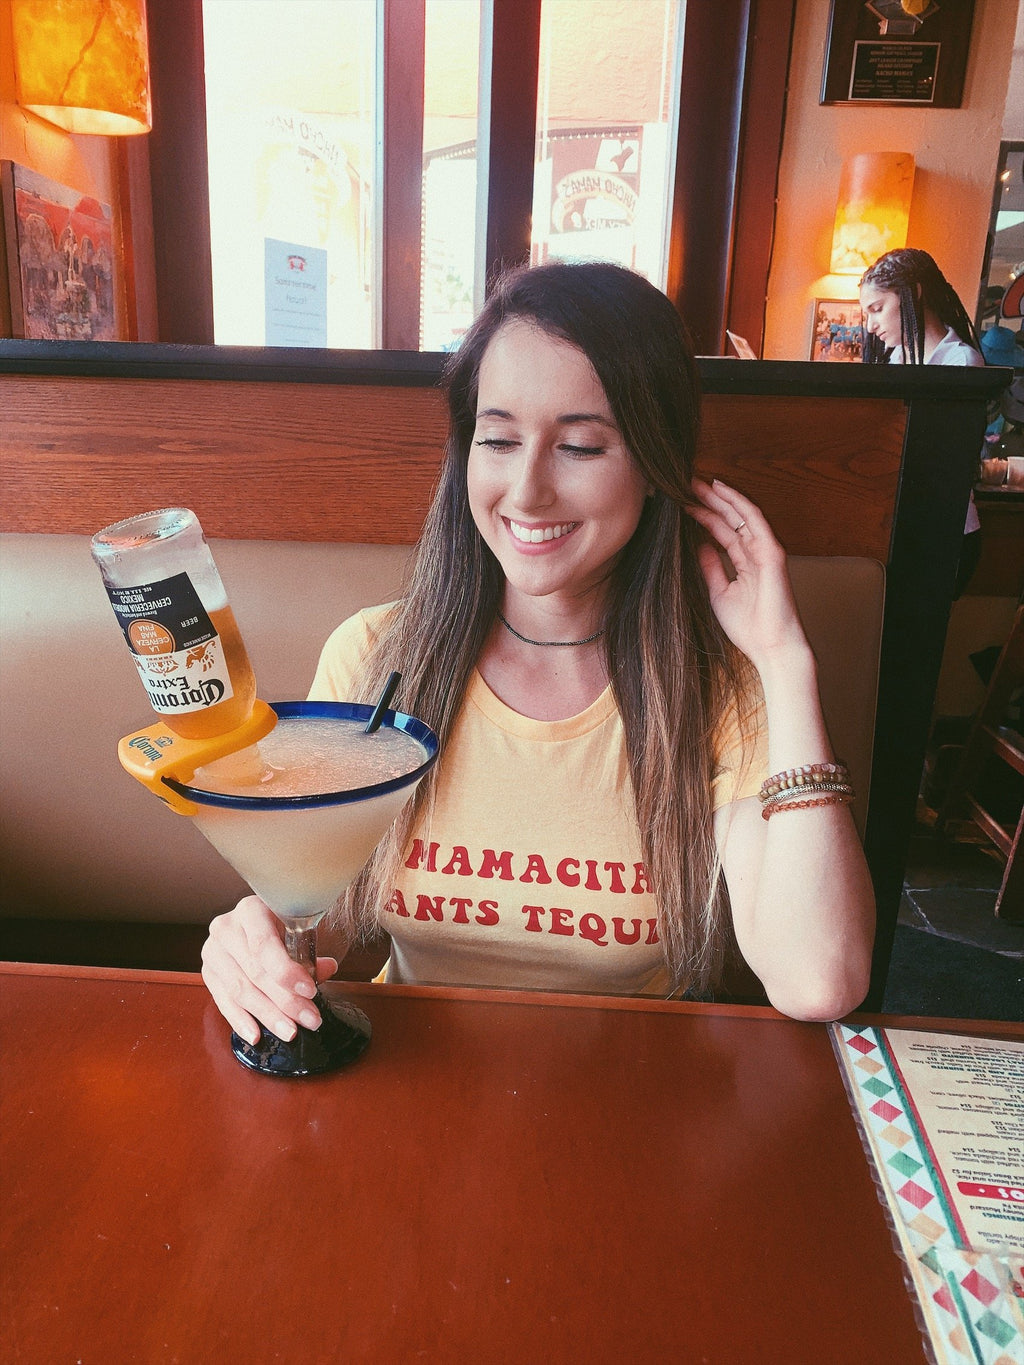 Wear this super cute Mamacita Wants Tequila shirt to all your festivities and bachelorette parties! Perfect tequila tee to enjoy a nice cold margarita!